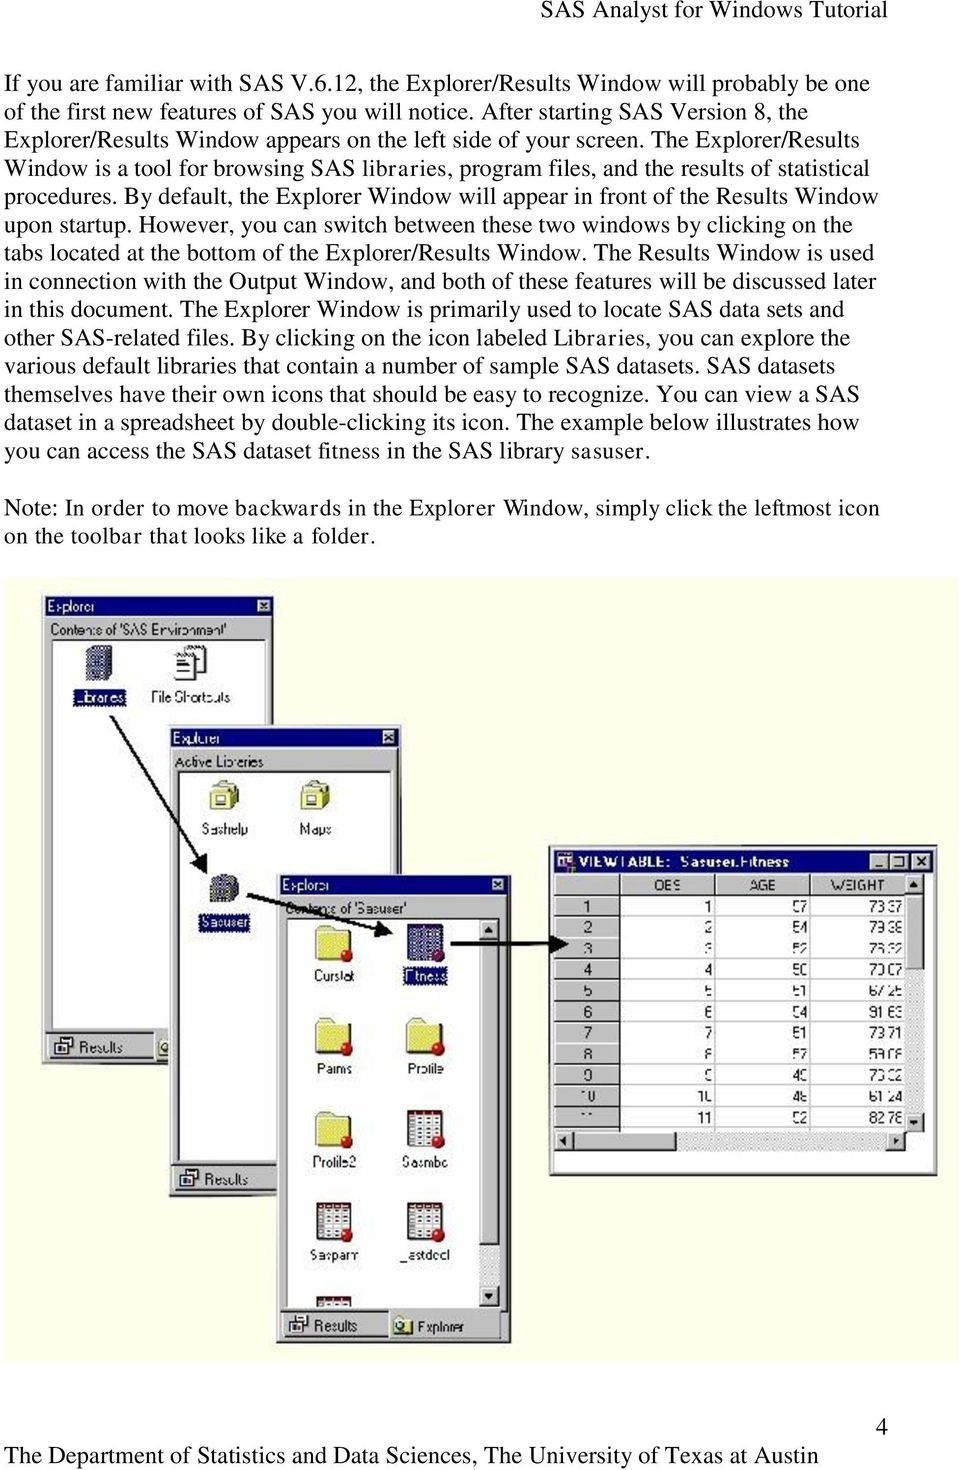 The Explorer/Results Window is a tool for browsing SAS libraries, program files, and the results of statistical procedures.